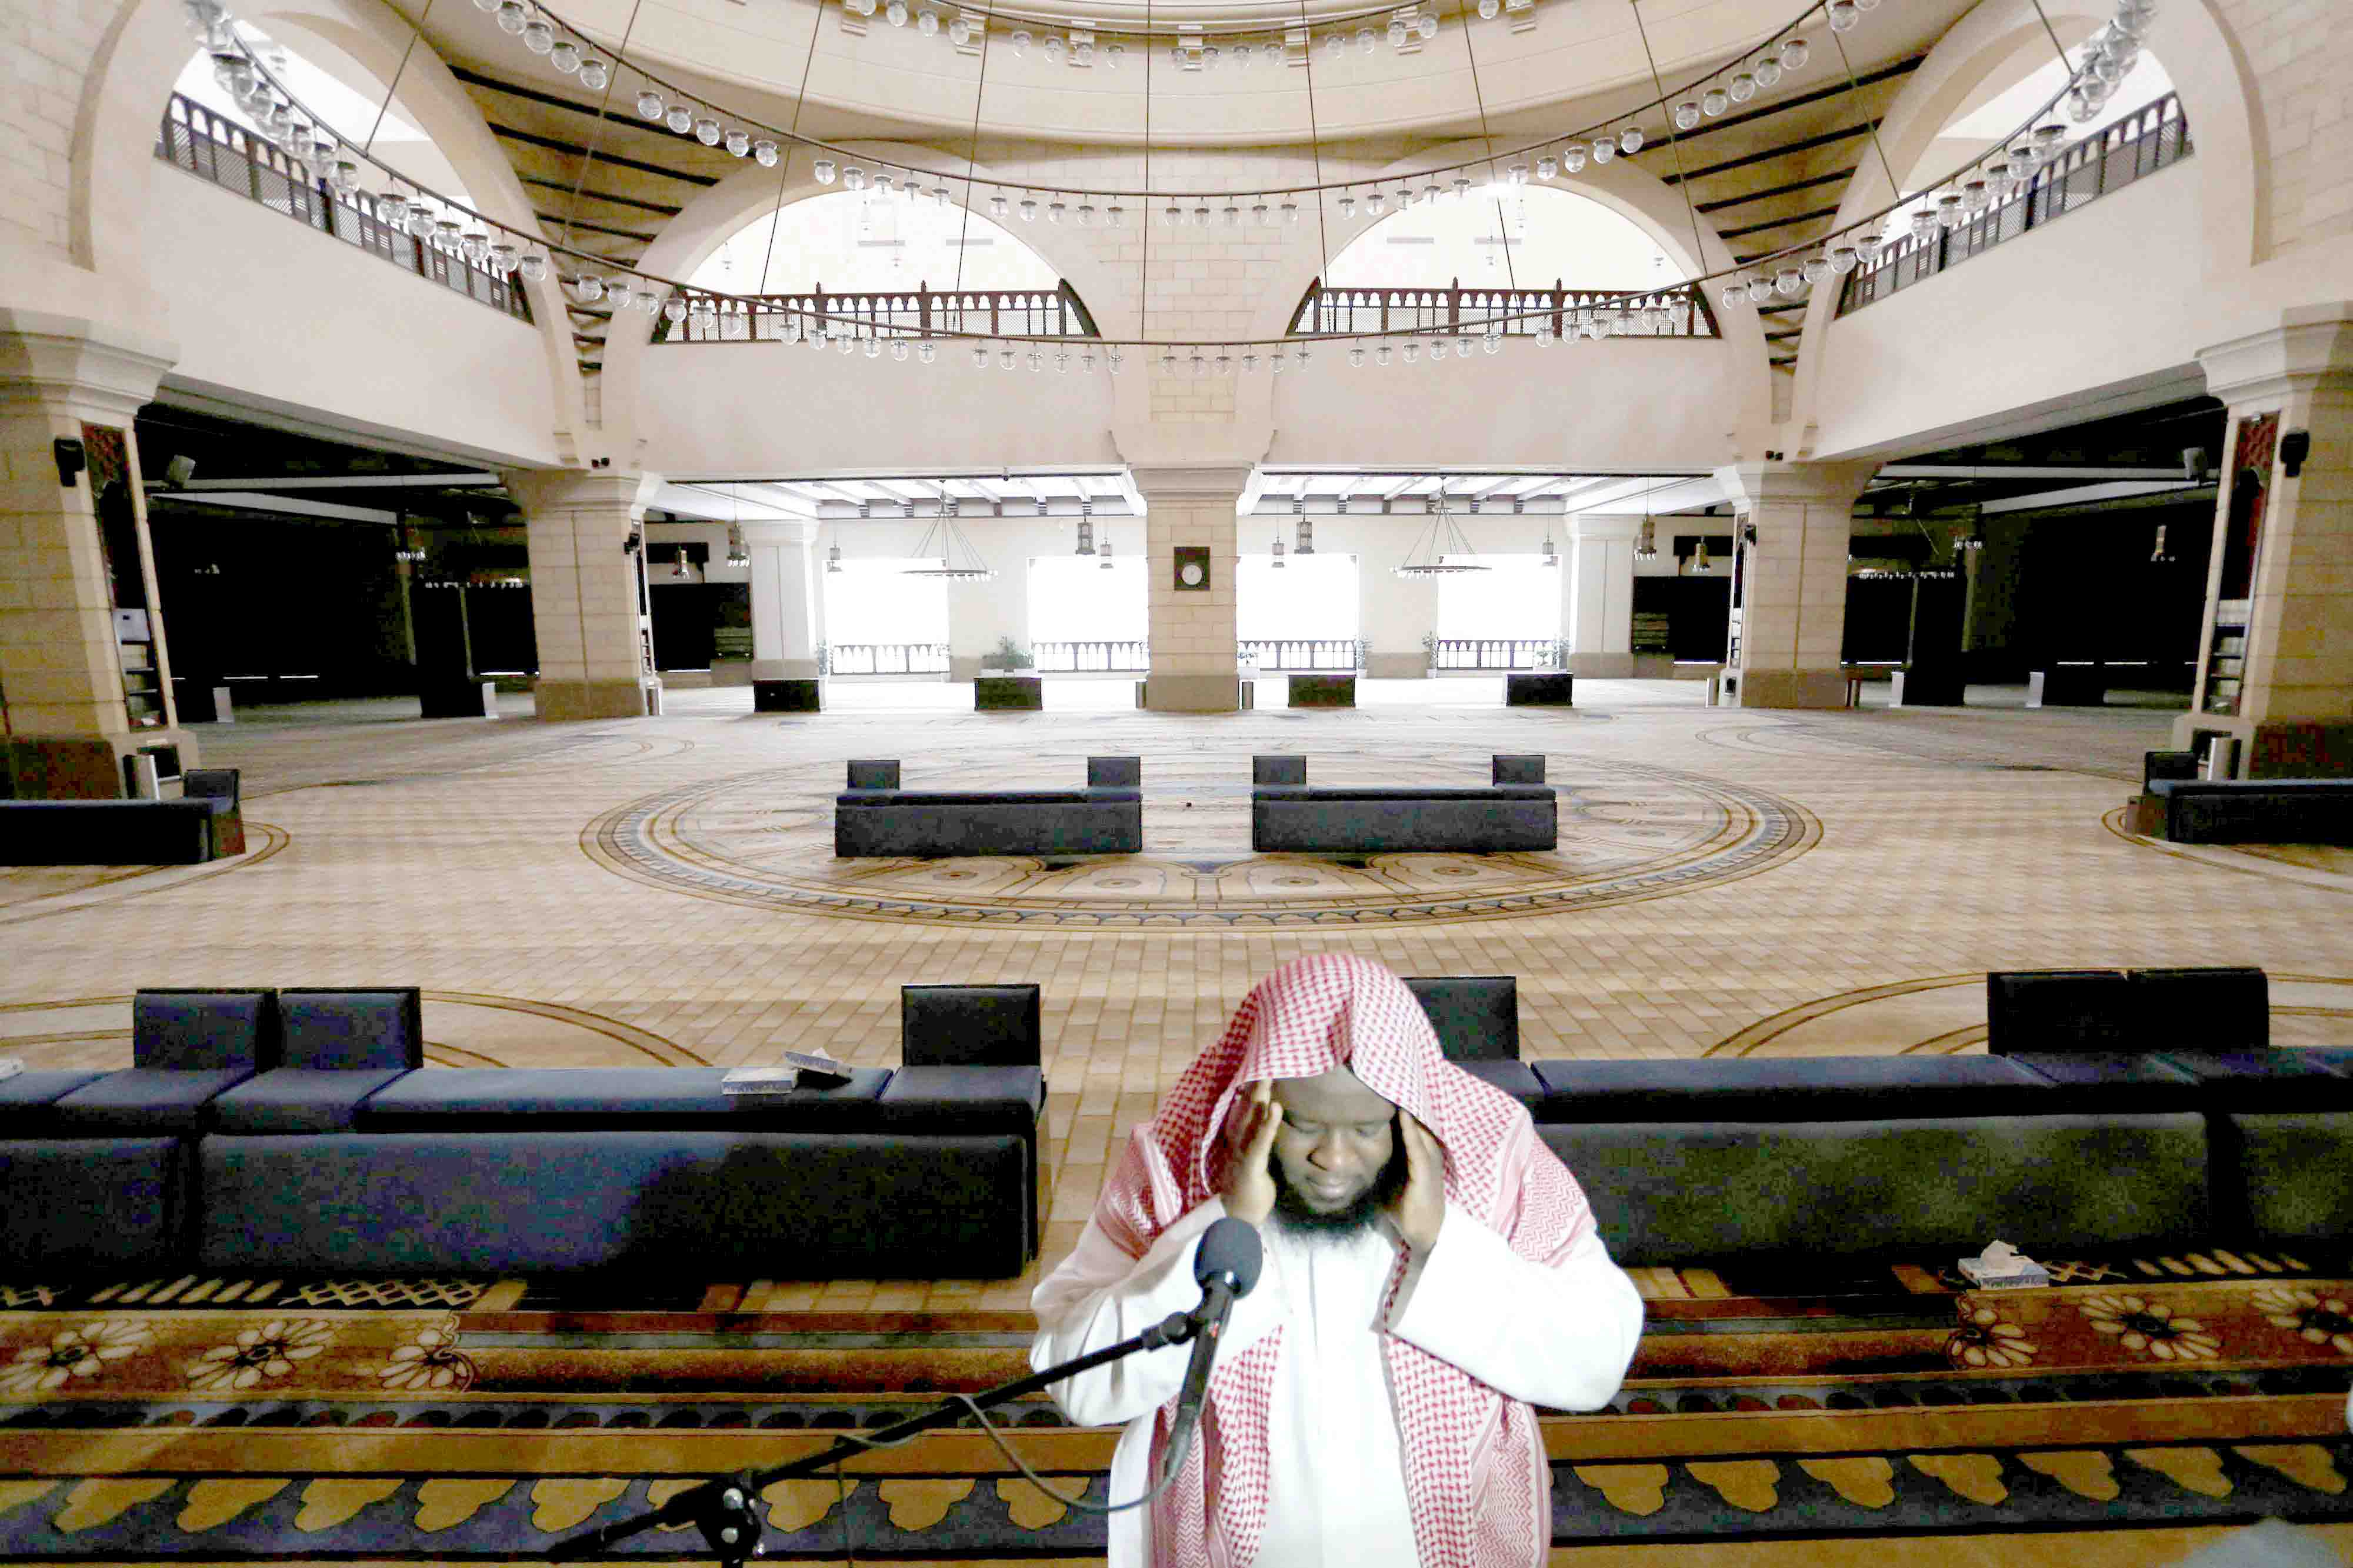 A cleric calls for the prayer at an empty Al-Rajhi Mosque after Friday prayers were suspended following the spread of the coronavirus in Riyadh, March 20. (Reuters)